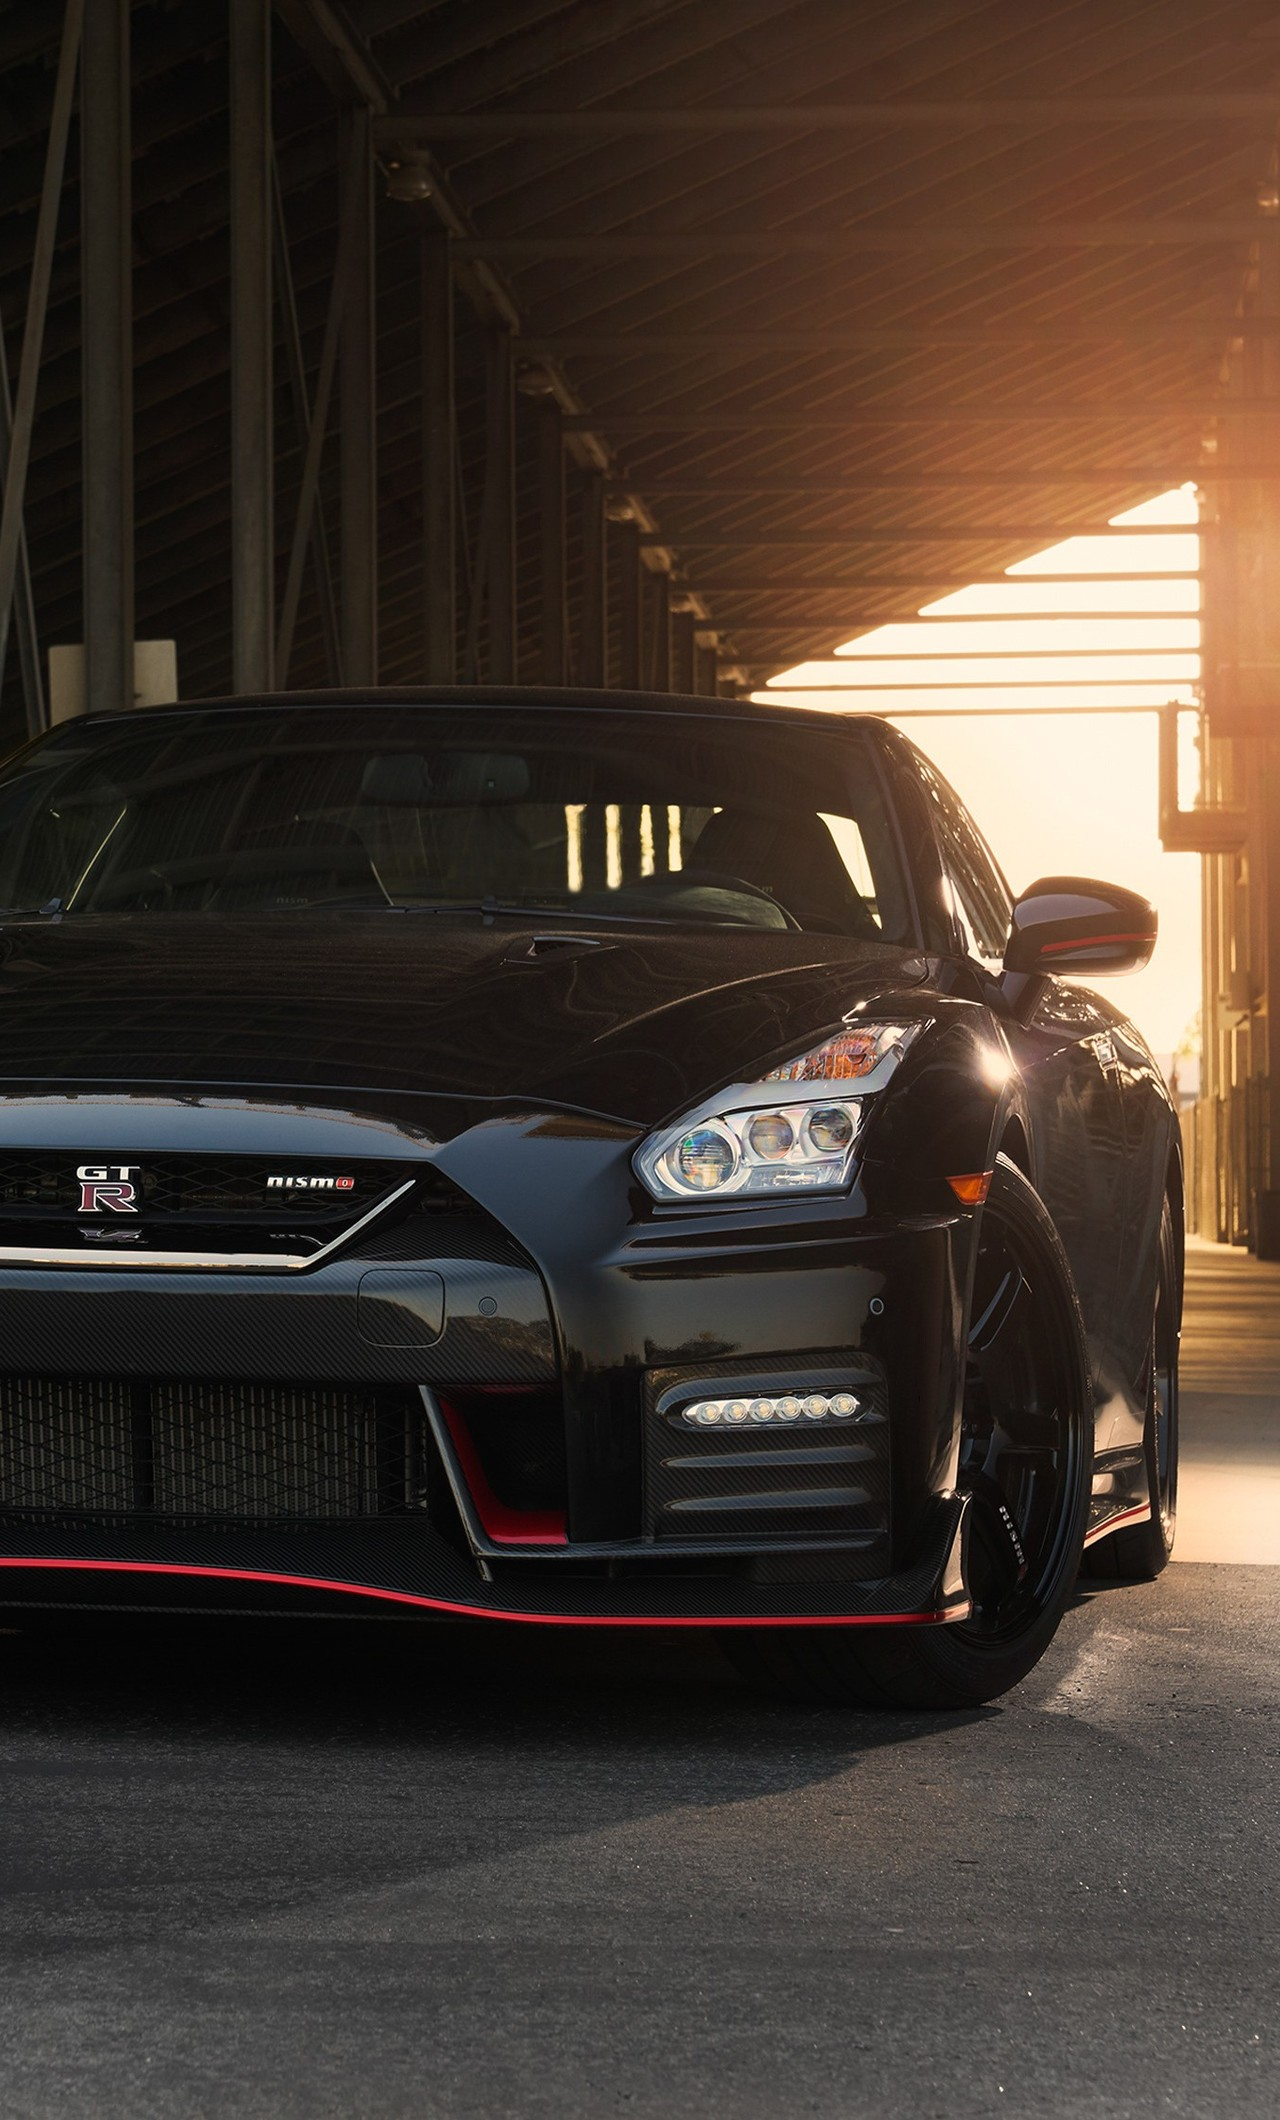 Black Gtr Wallpaper Posted By Ethan Tremblay